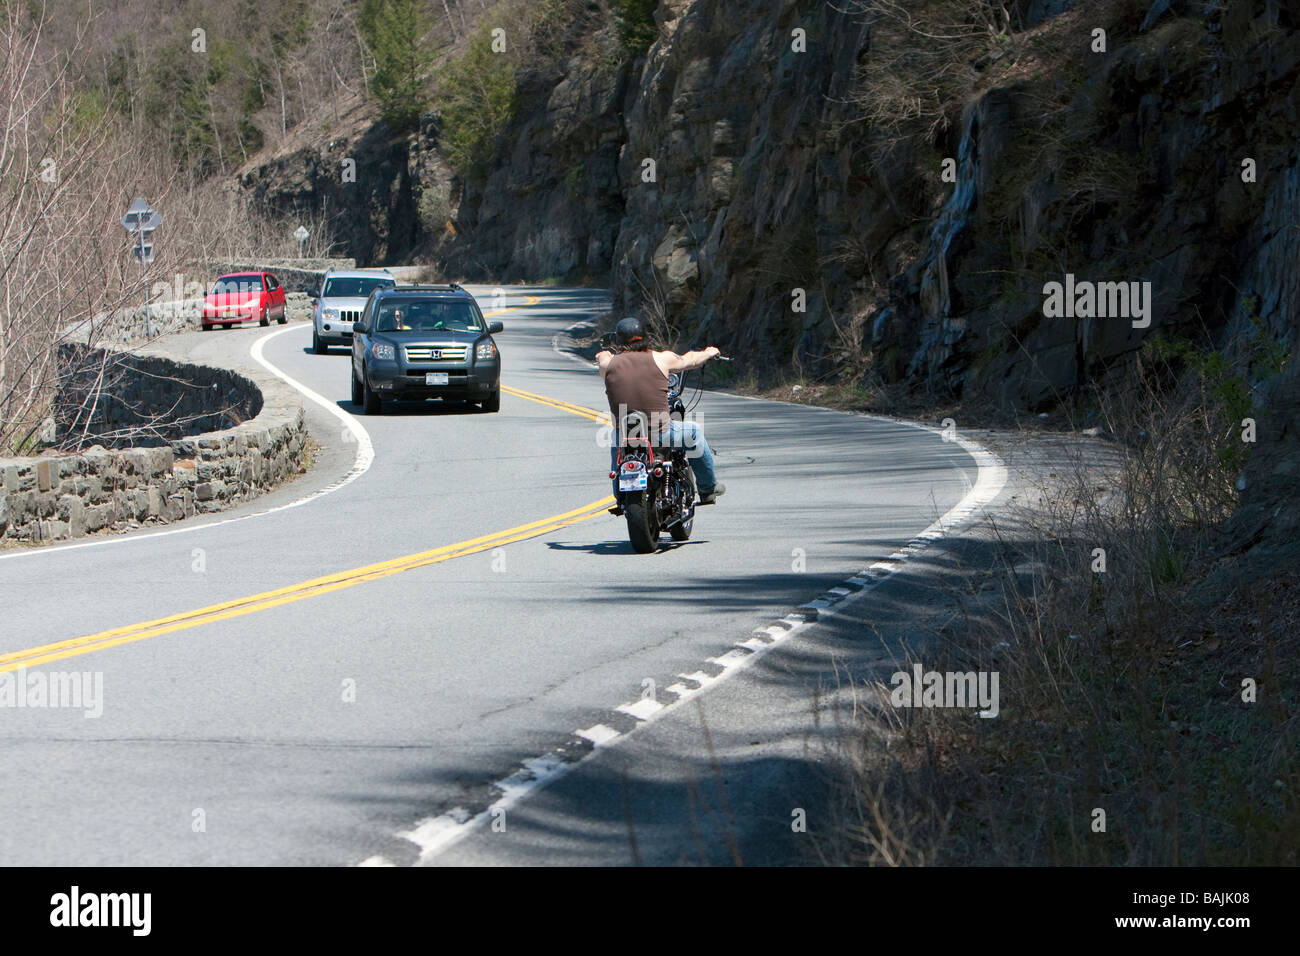 Curves new york Catwalk Curves Motorcycle Riding The Curves At Hawks Nest New York E News Motorcycle Riding The Curves At Hawks Nest New York Stock Photo